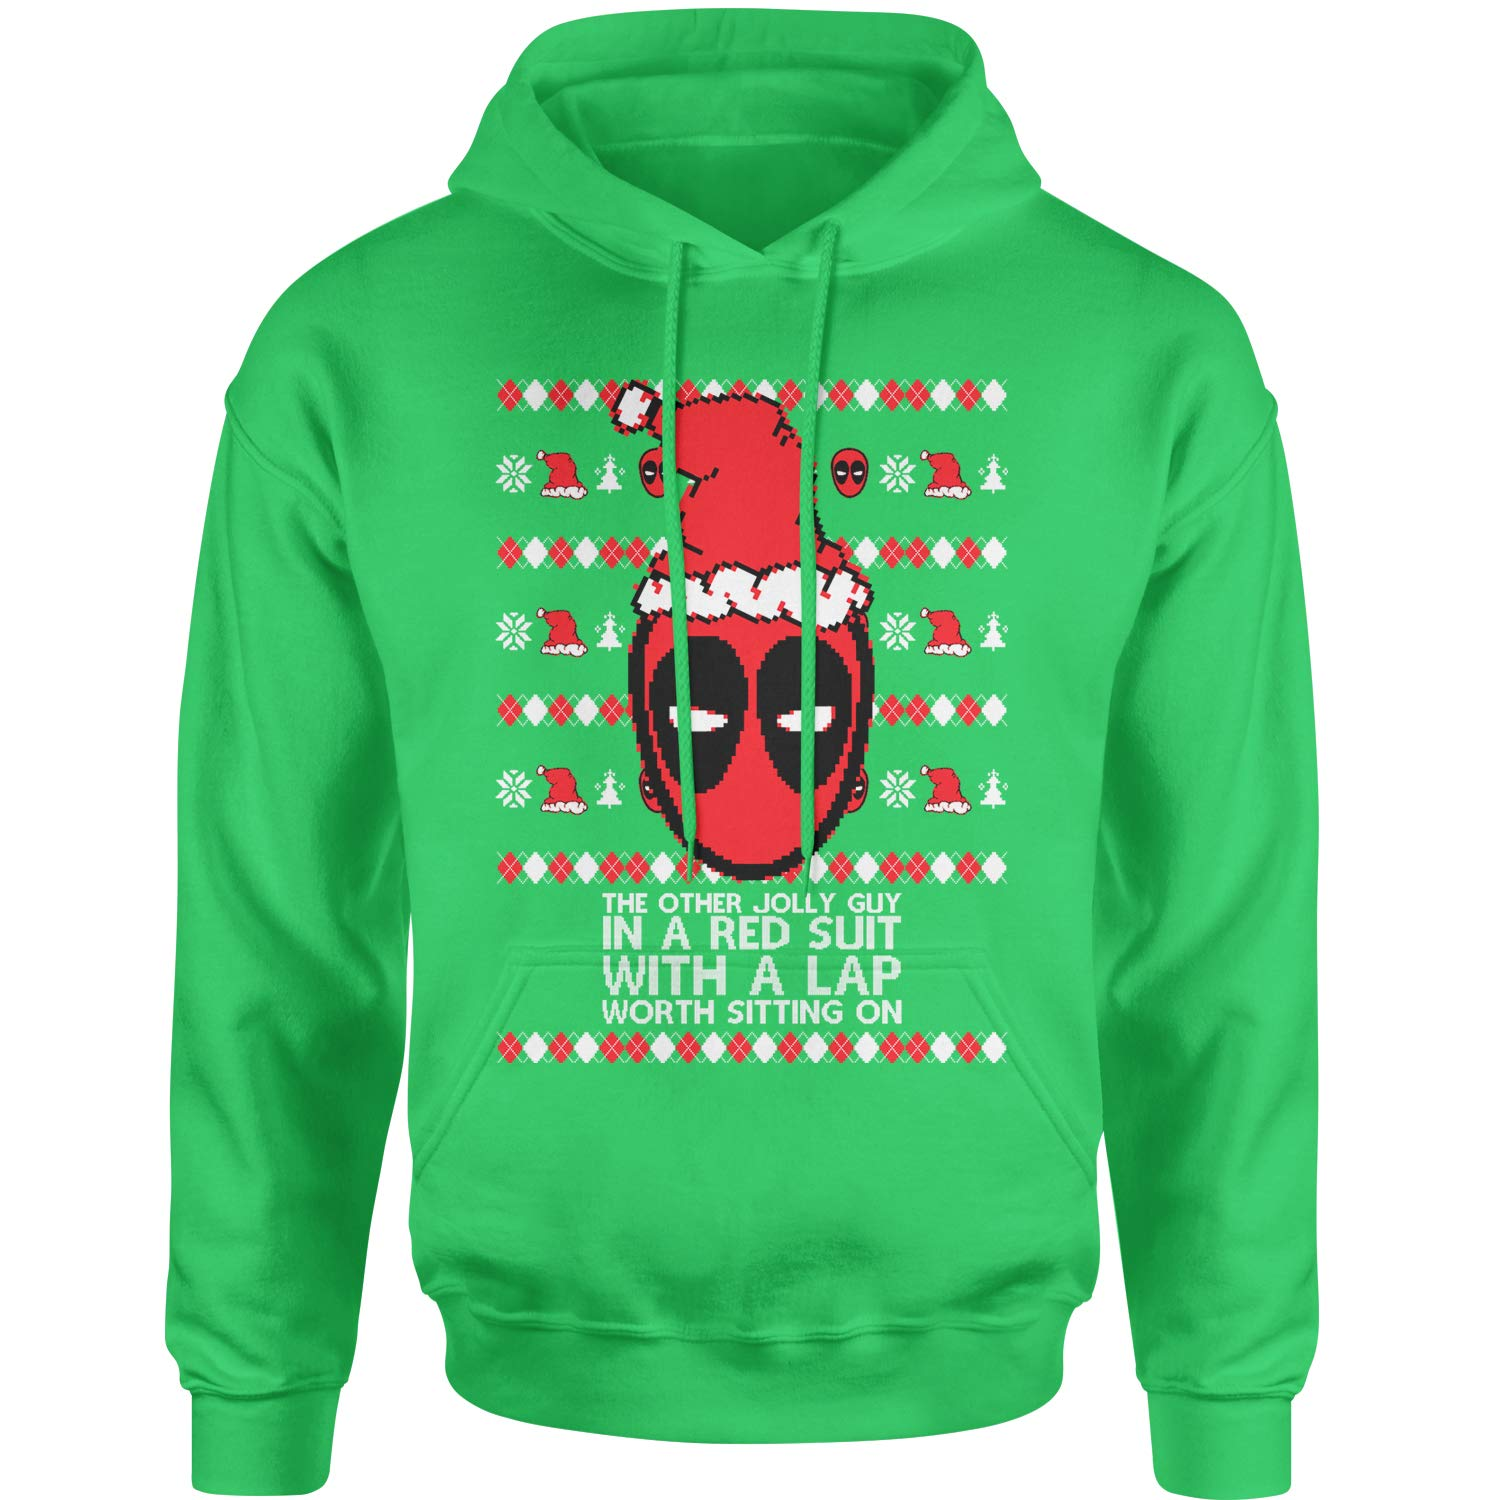 Motivated Culture MERC with A Mouth Ugly Christmas Adult Unisex Hoodie